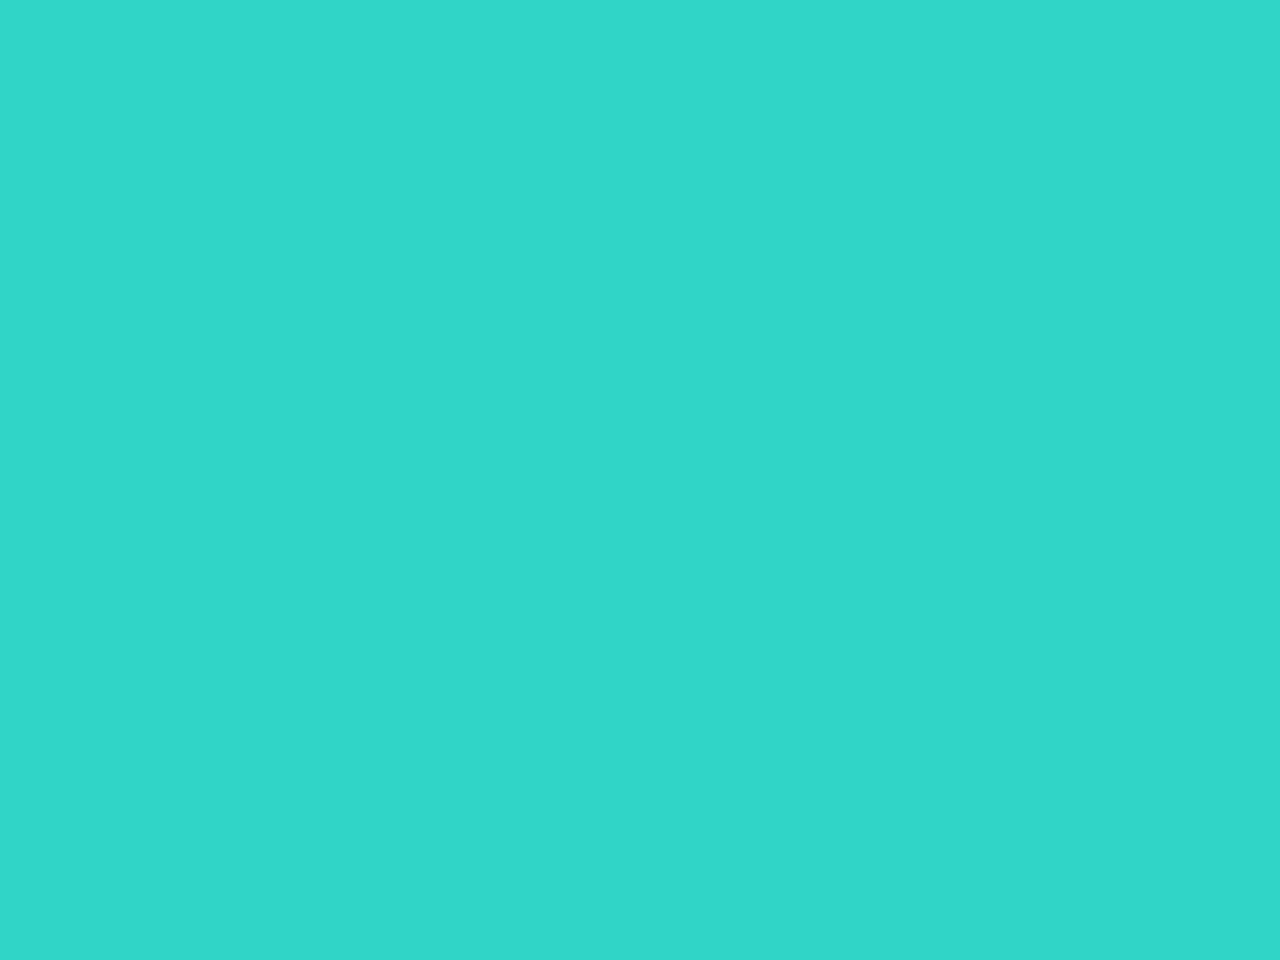 1280x960 Turquoise Solid Color Background